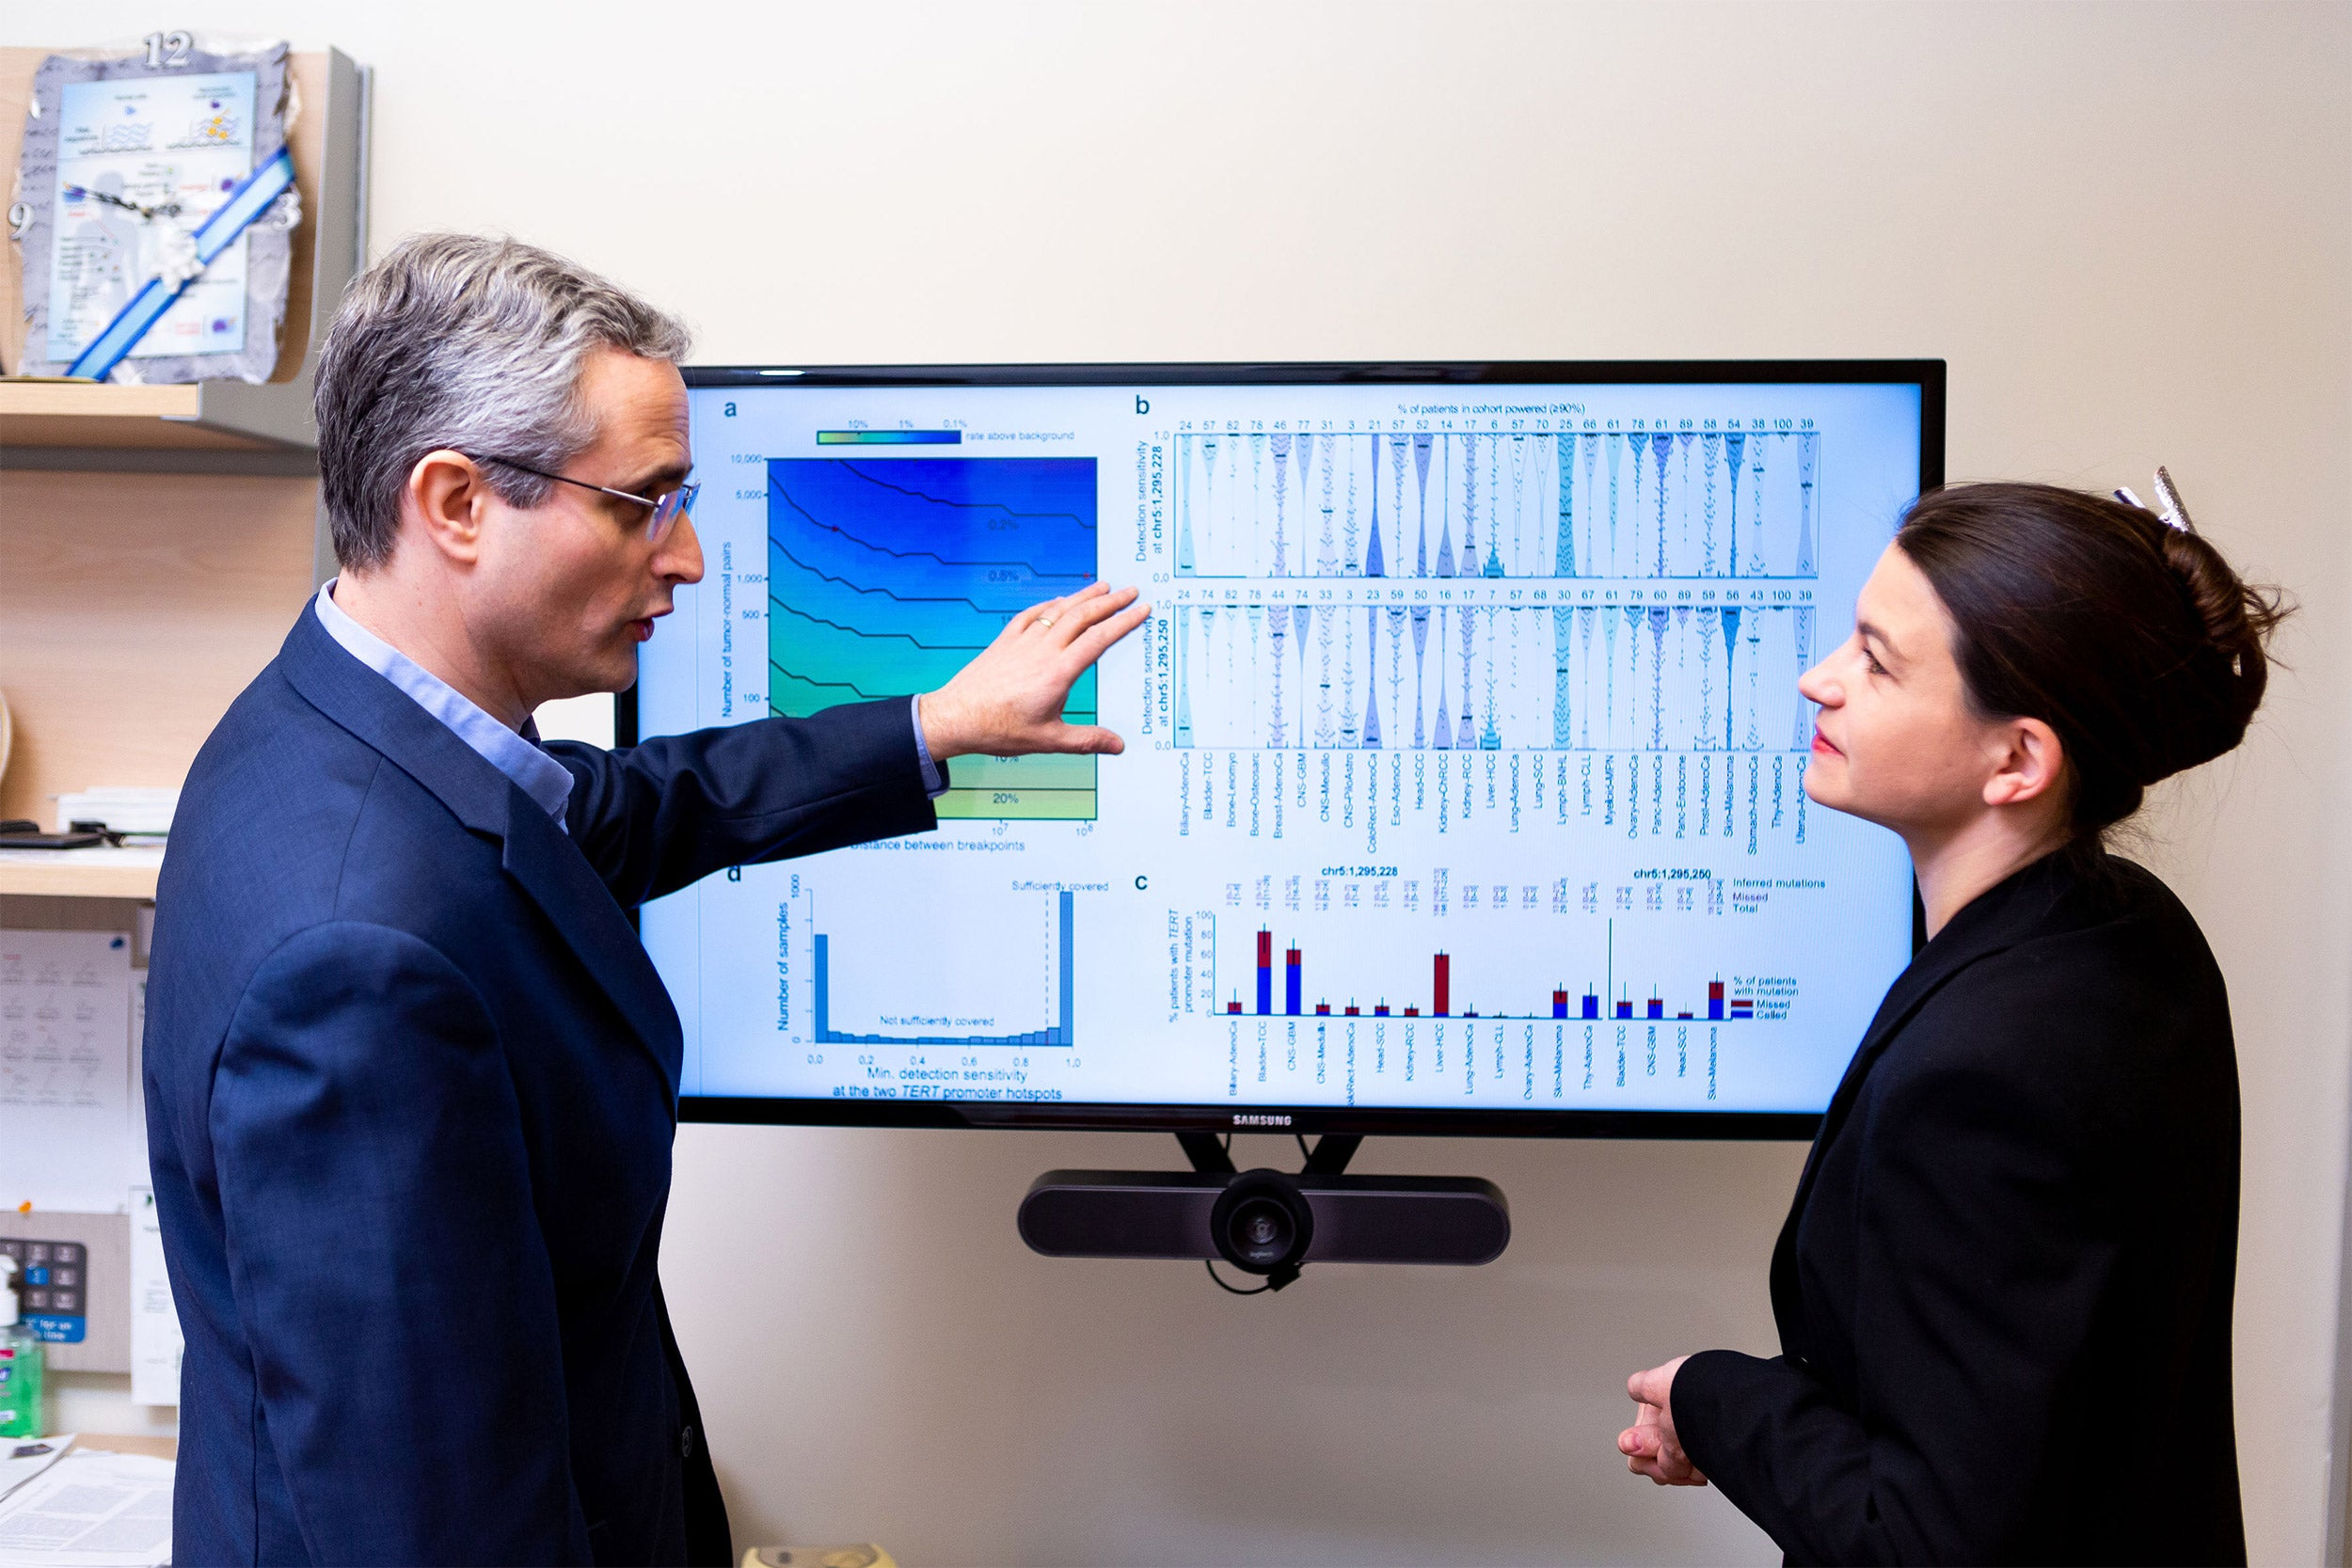 Two scientists looking at a computer screen.